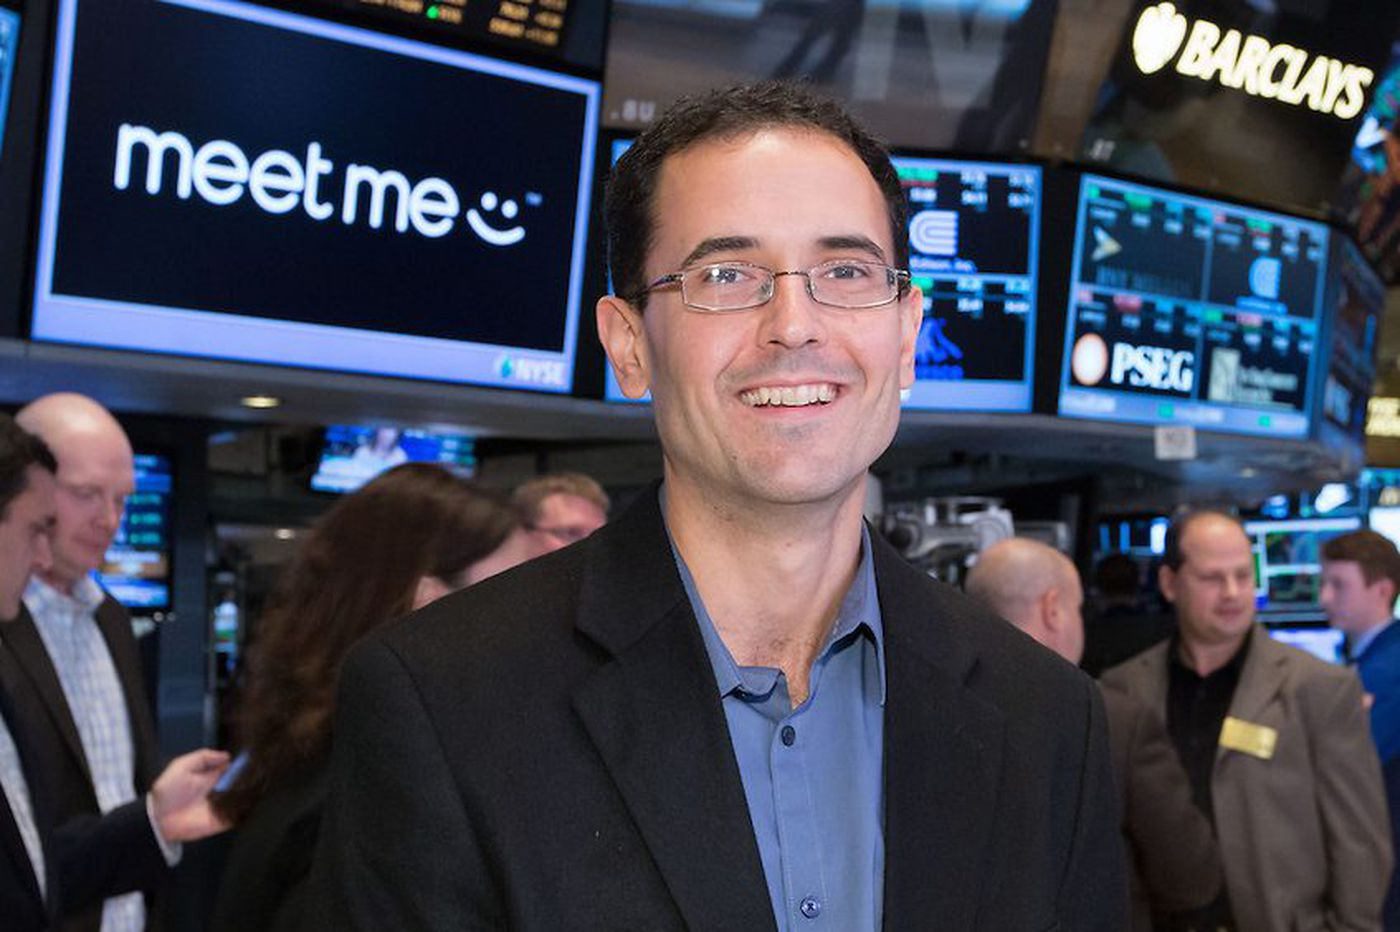 New Hope's Meet Group buys another dating app for $13.8 million